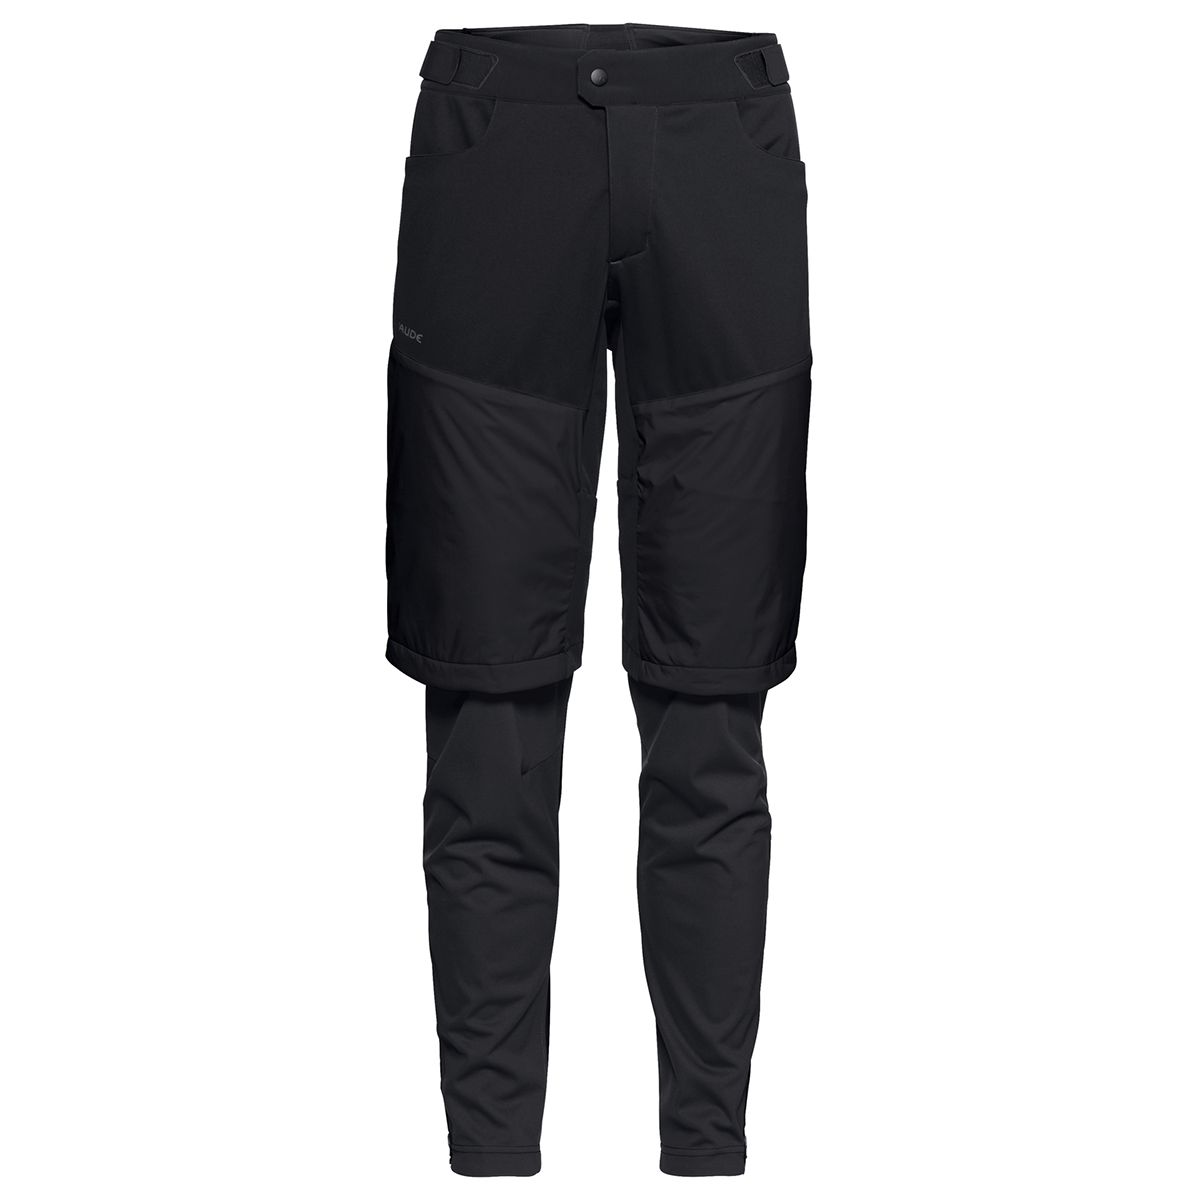 Men's All Year Moab ZO Pants